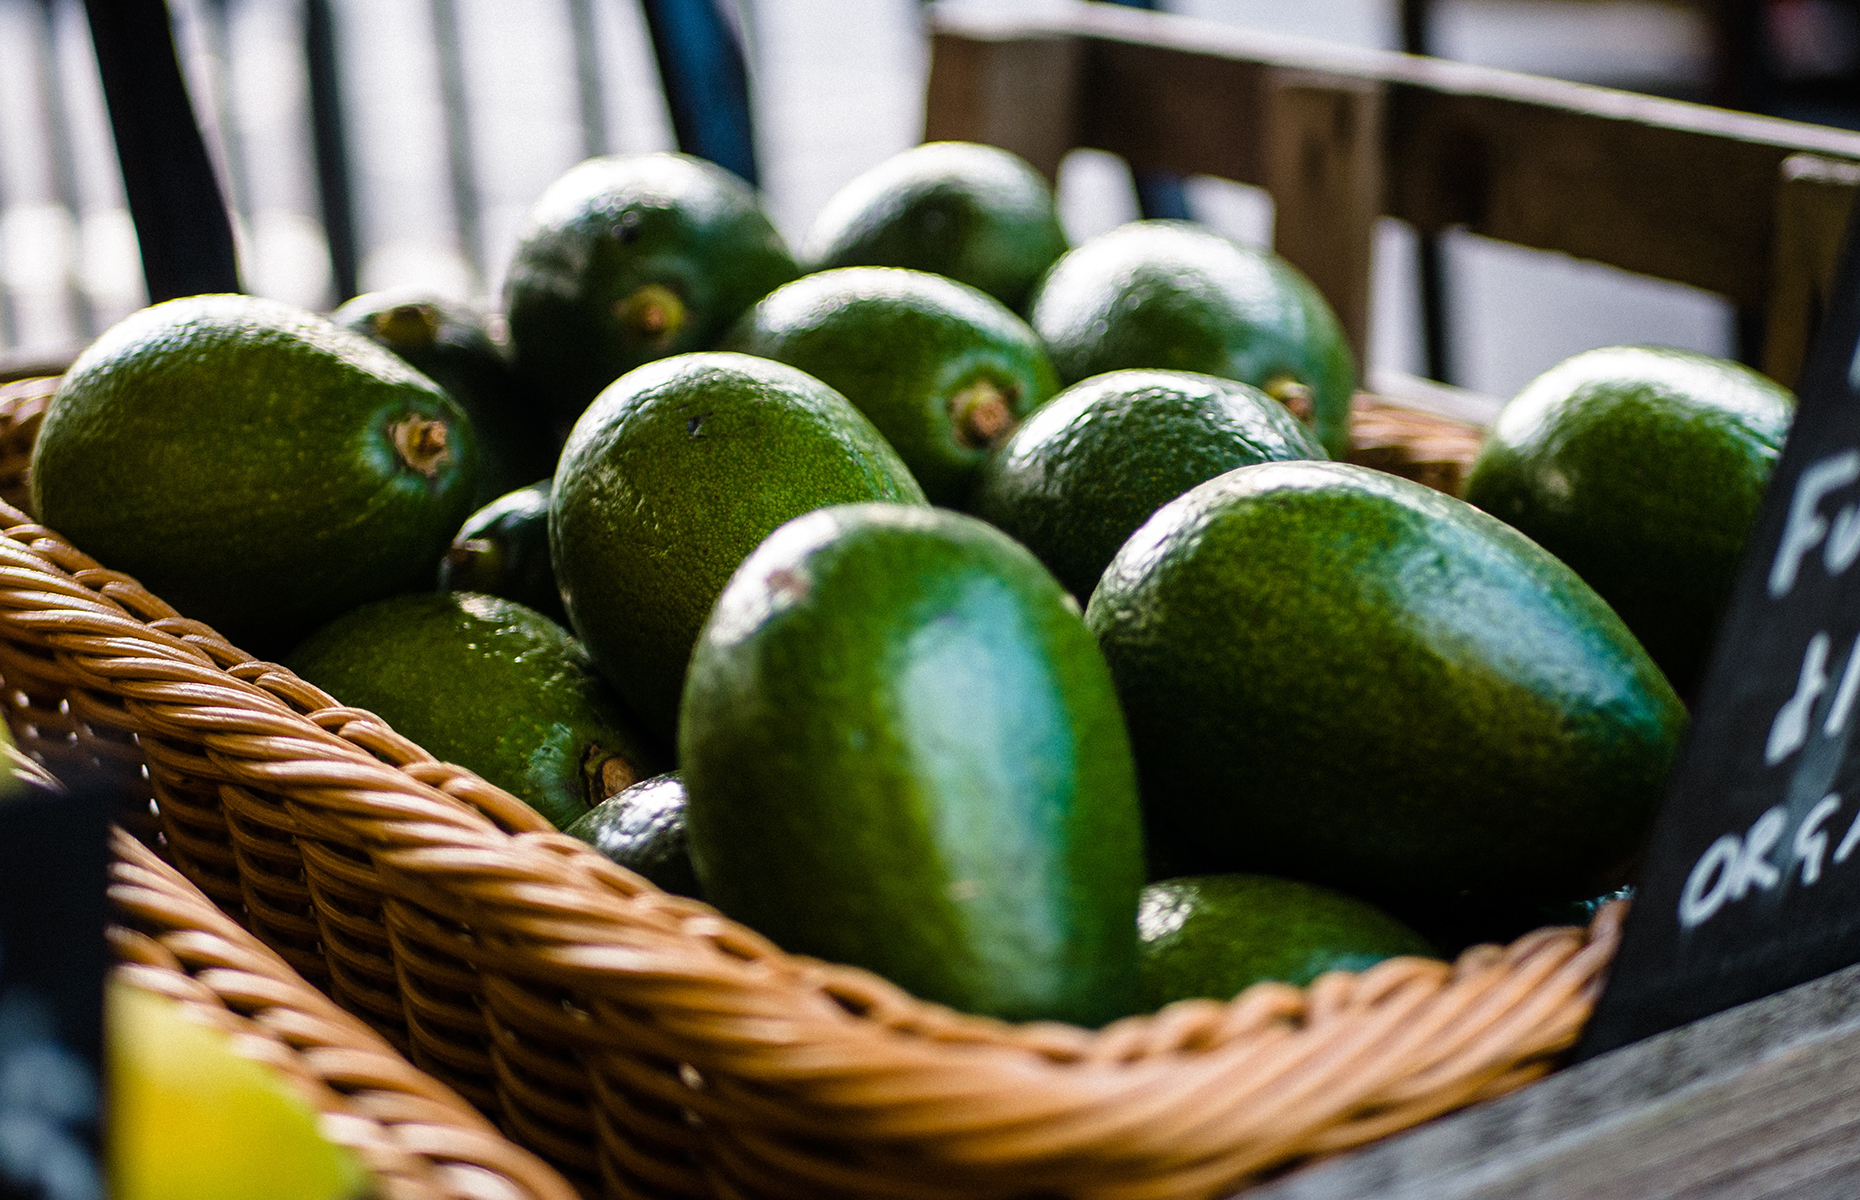 A basket of avocados (Image: RΛN SHOT FIRST/Unsplash)